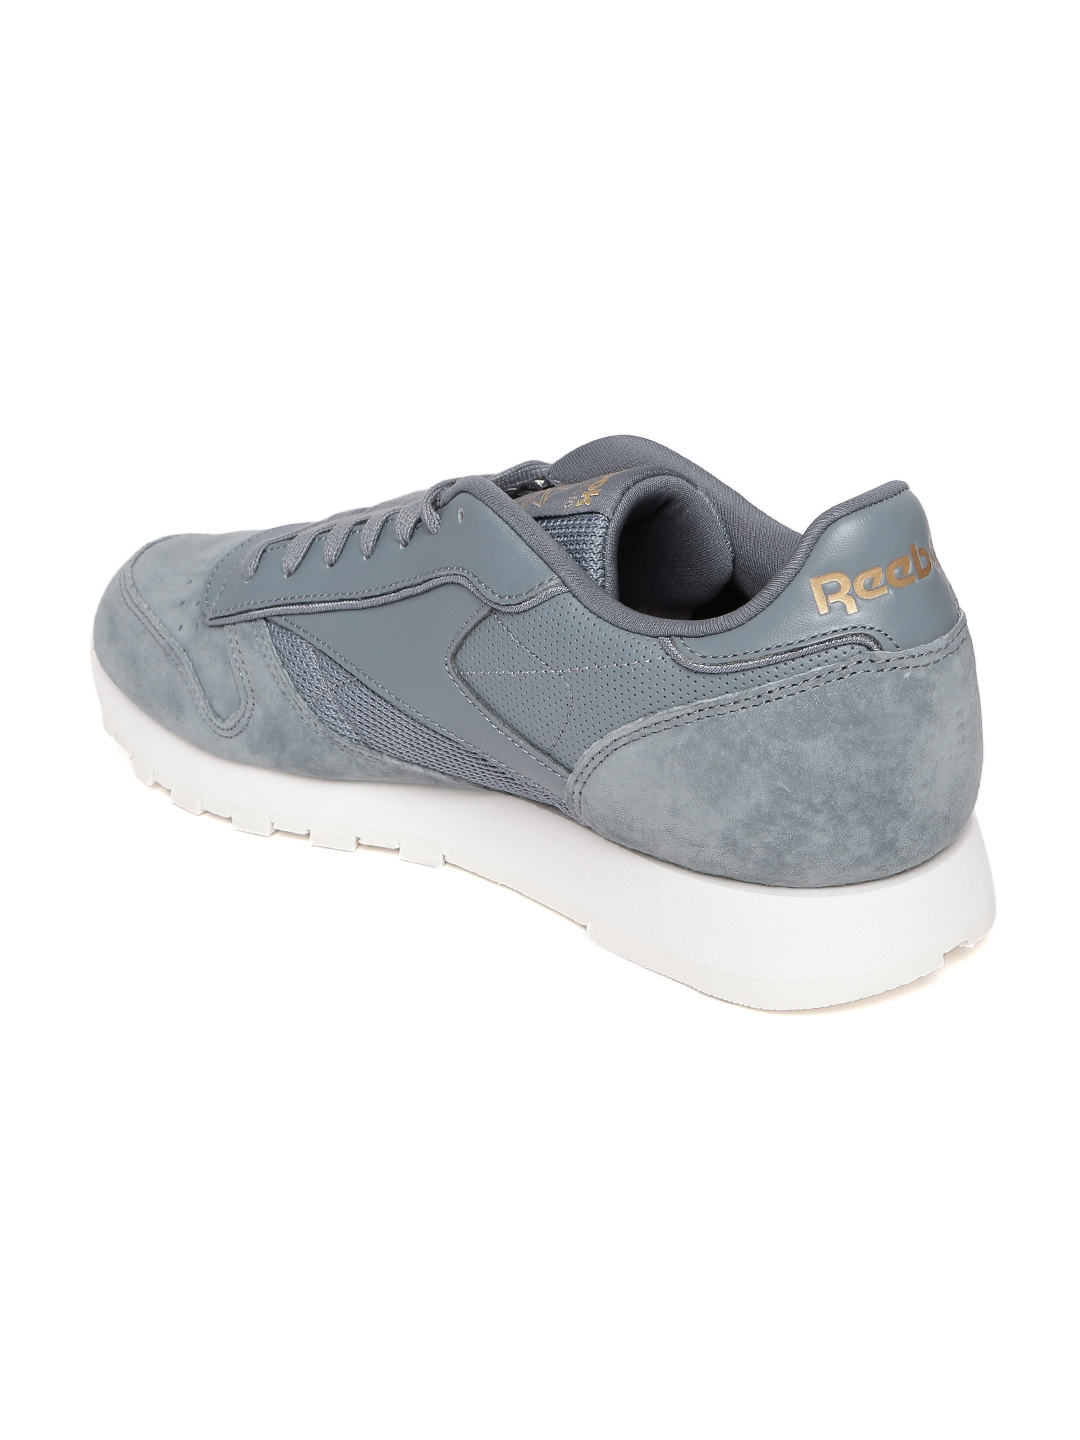 ff505070822 Buy Reebok Classic Men Grey CL Leather ALR Sneakers - Casual Shoes ...